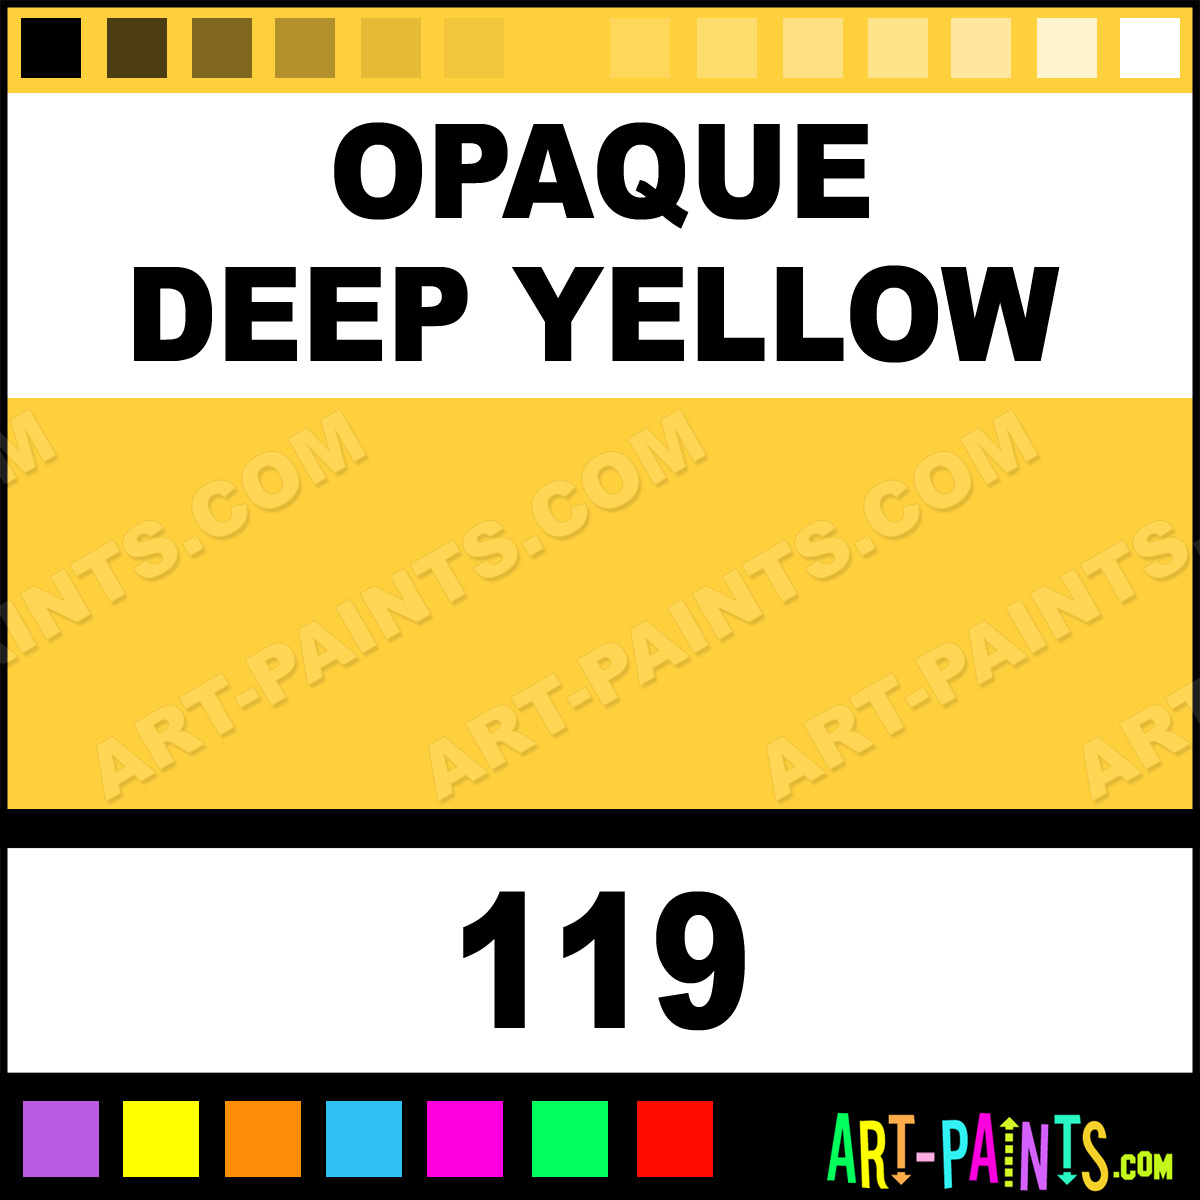 Opaque Deep Yellow Idea Stoffa Fabric Textile Paints 119